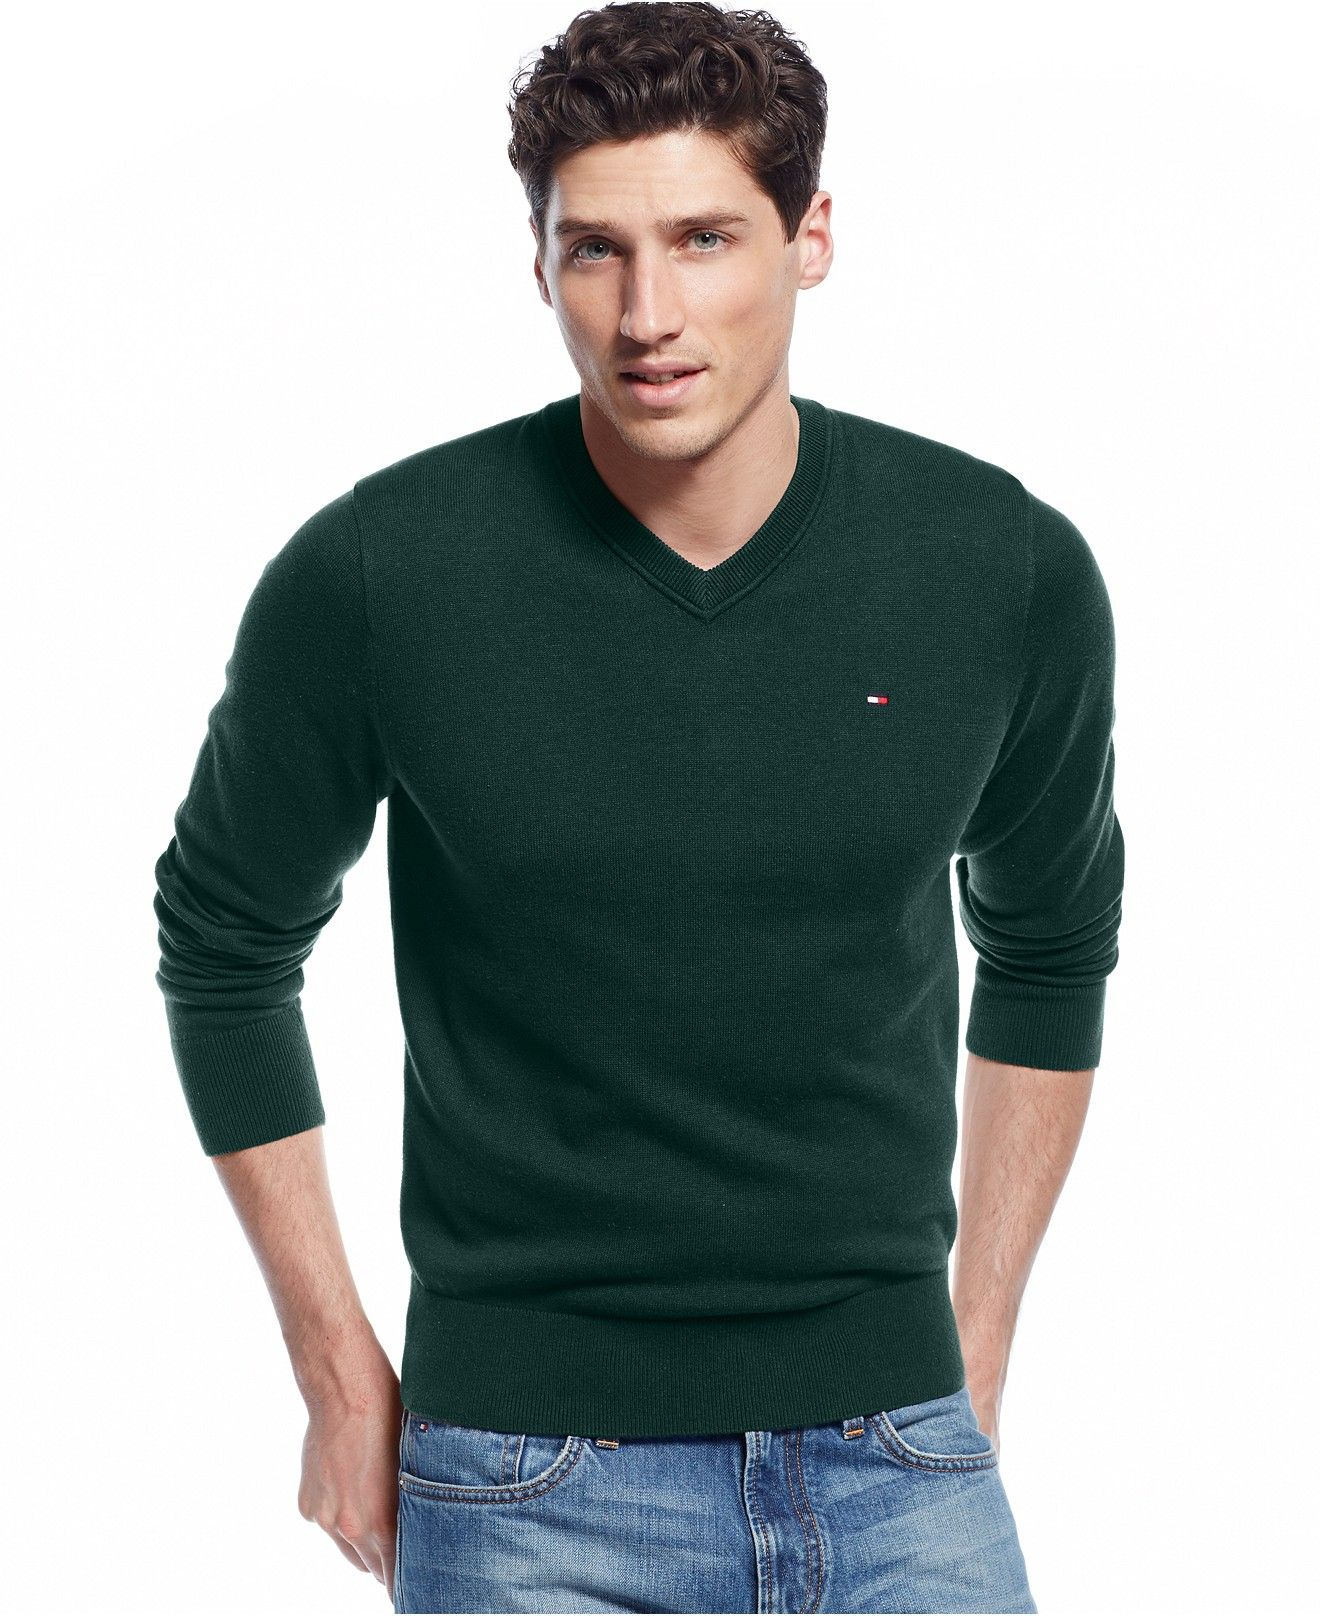 e92ddab884b6cc Tommy Hilfiger Big & Tall Signature Solid V-Neck Sweater - Sweaters - Men -  Macy's Dark Green